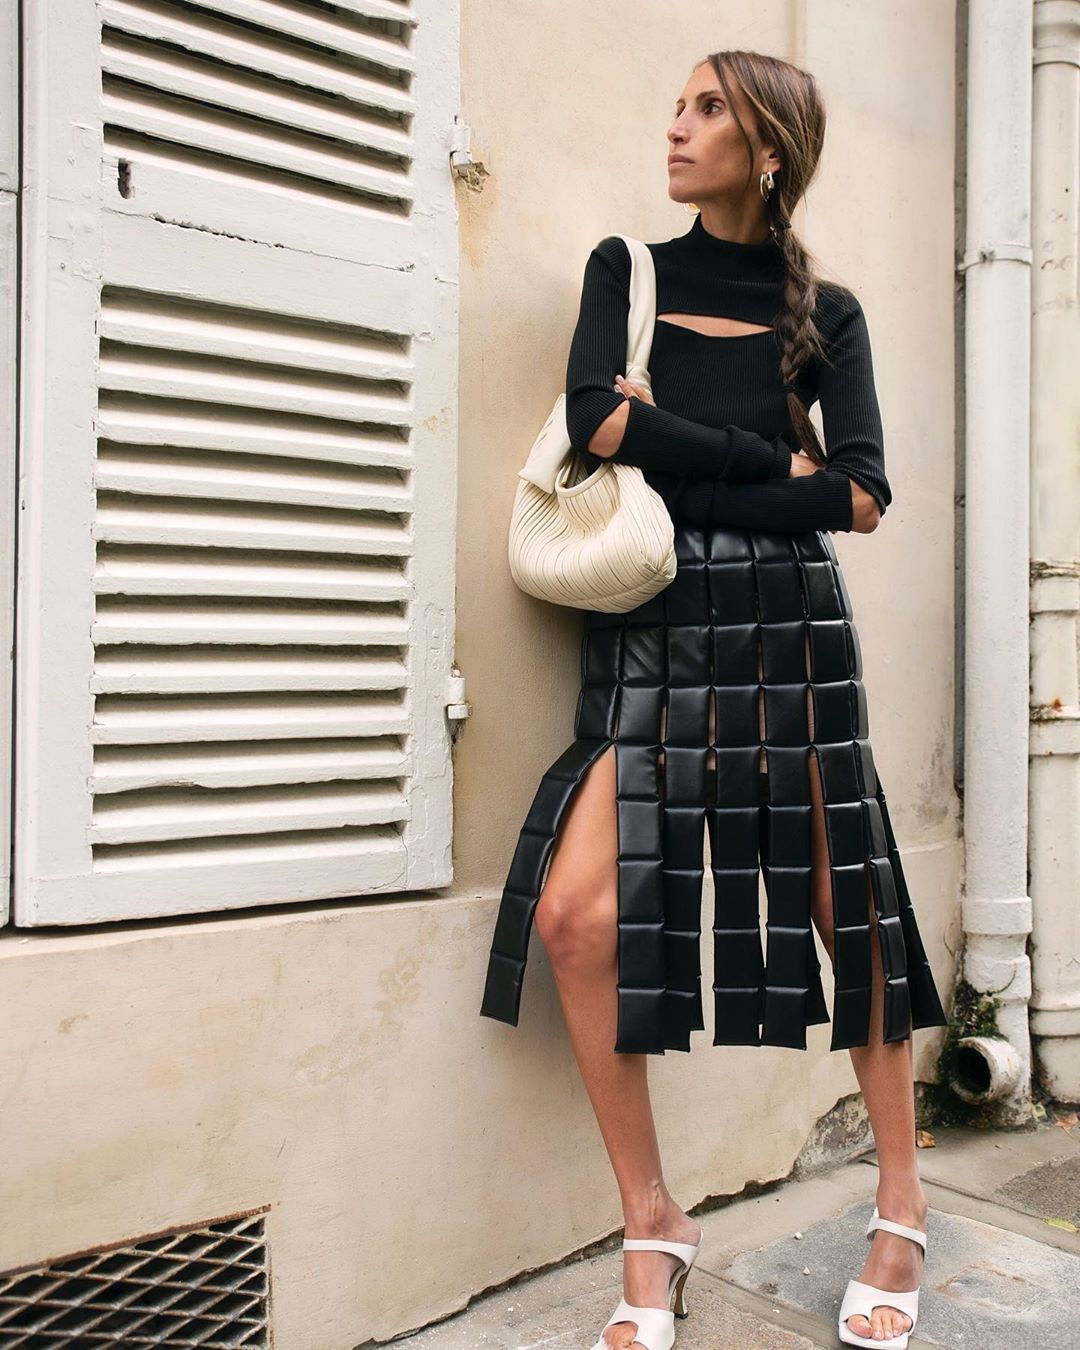 chloe-harrouche-a-w-a-k-e-quilted-faux-leather-midi-skirt-instagram